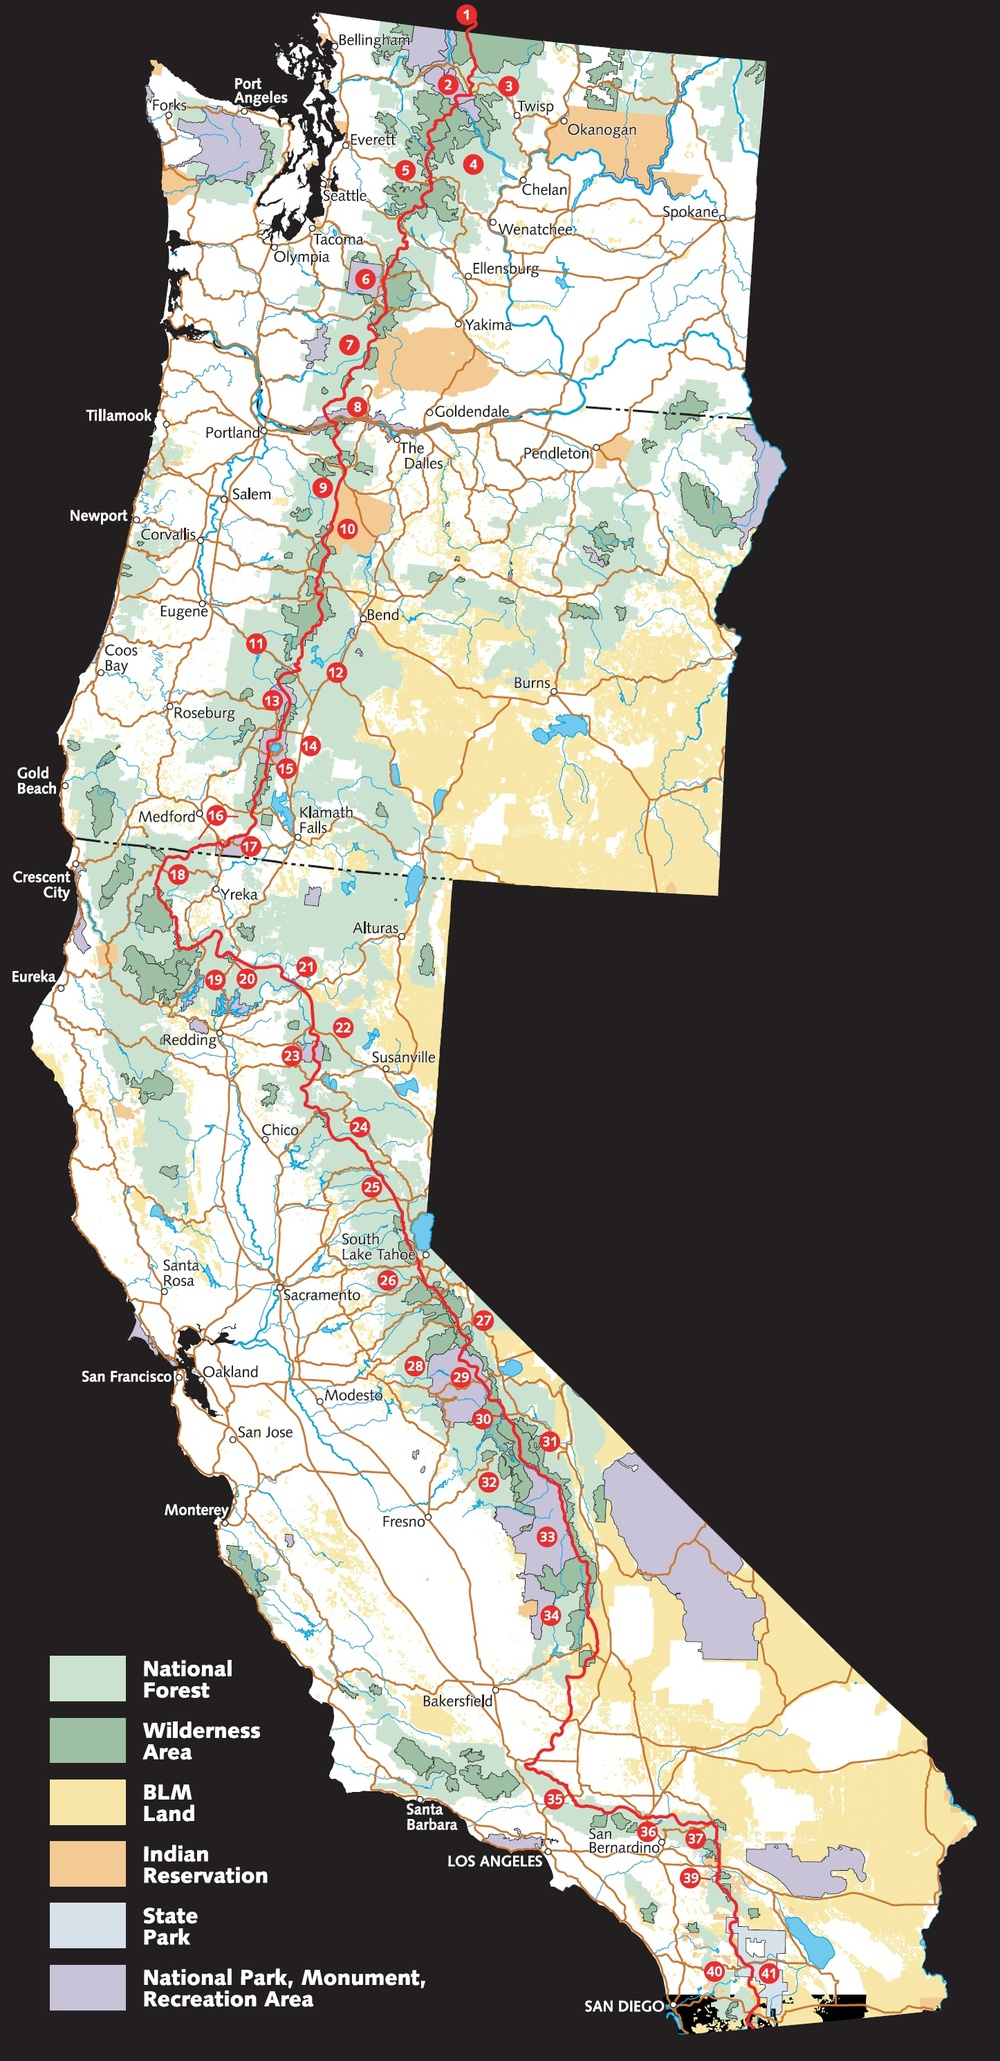 Pacific Crest Trail overview map